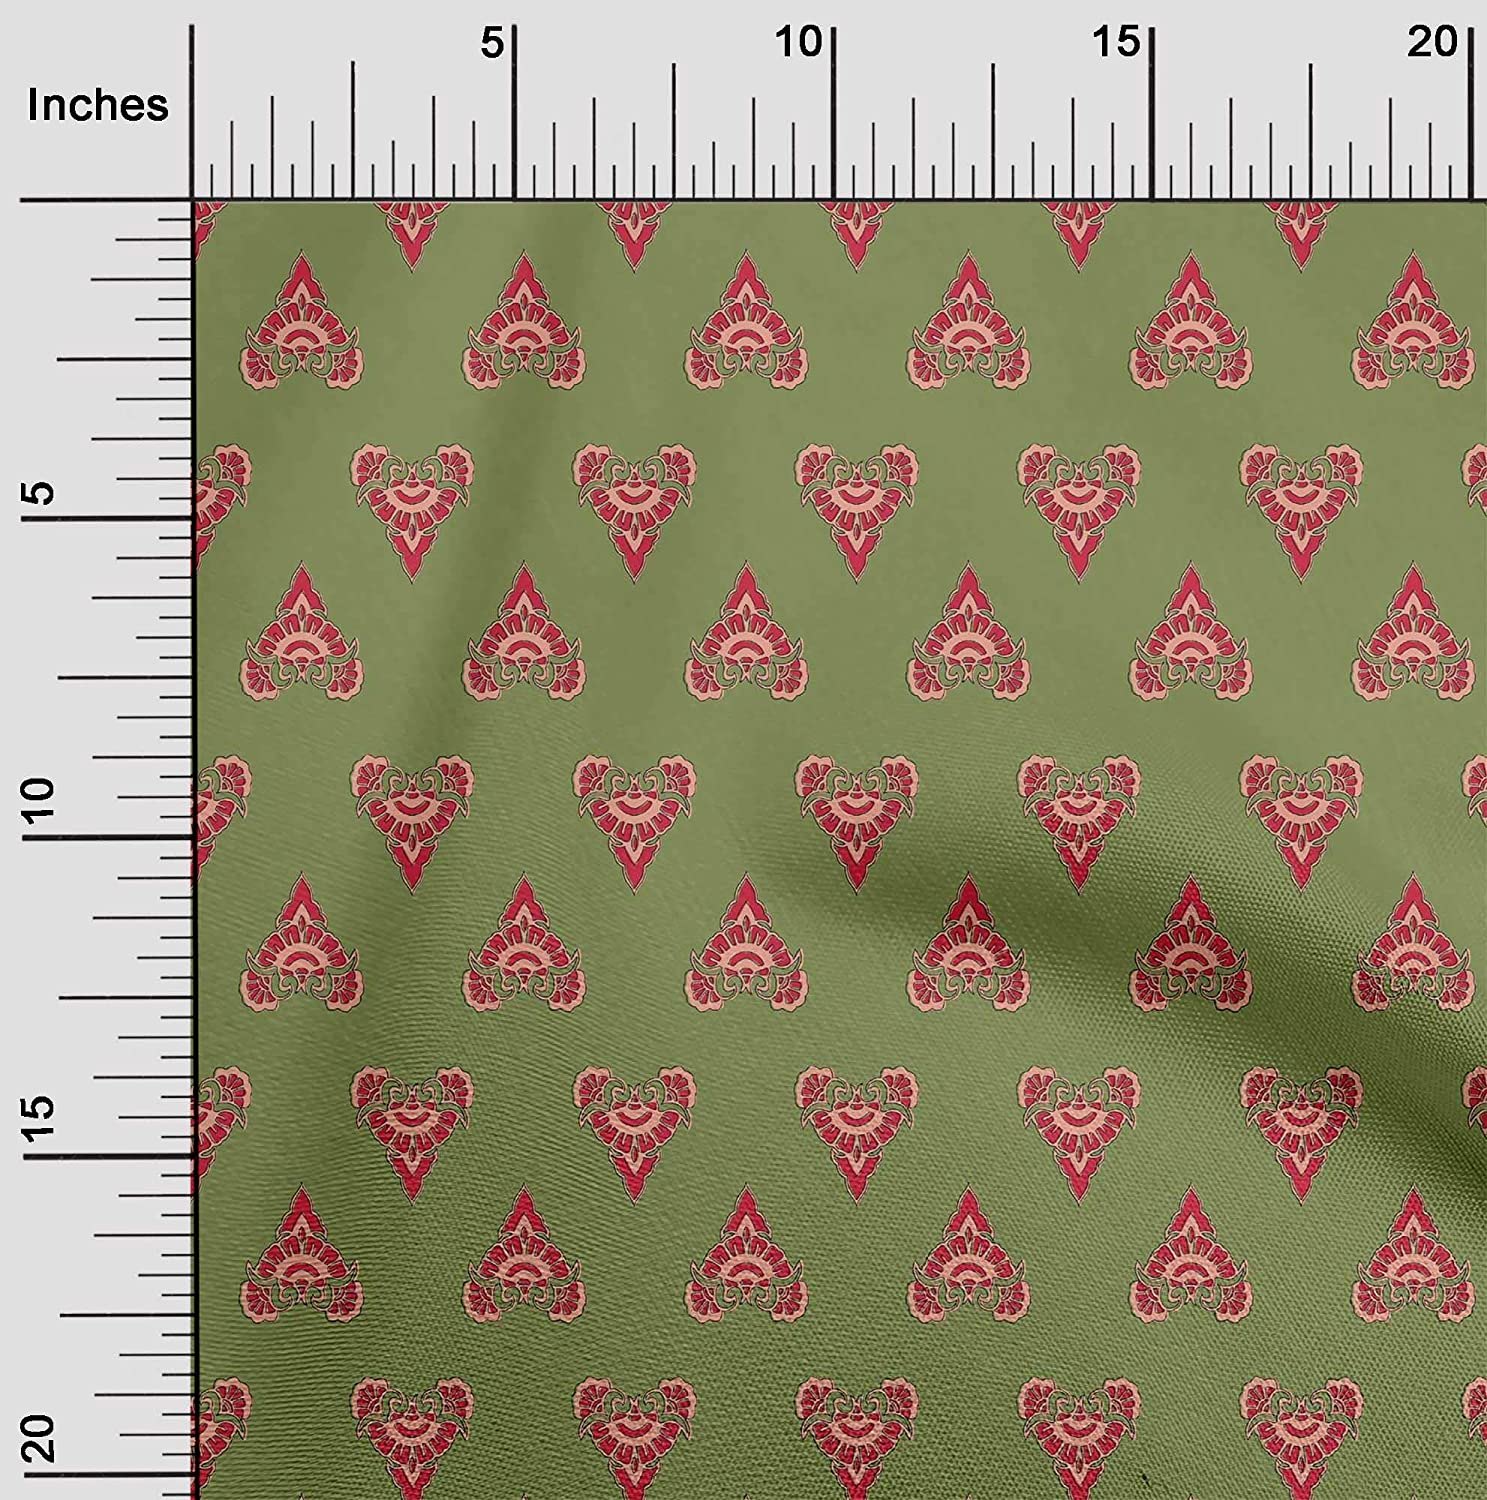 oneOone Organic Cotton Voile Fabric Floral Block Print Fabric by The Yard 42 Inch Wide